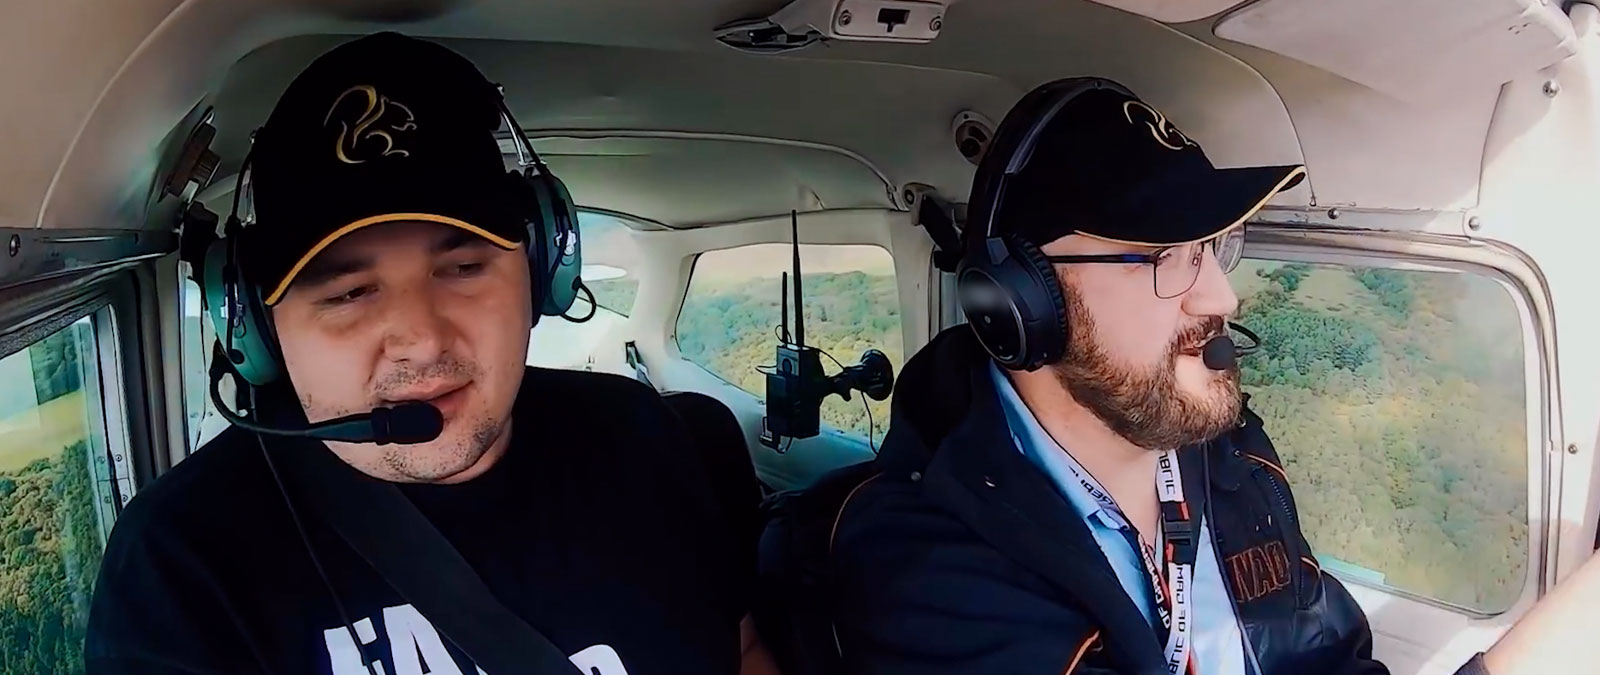 Two people with headsets and hats flying a plane